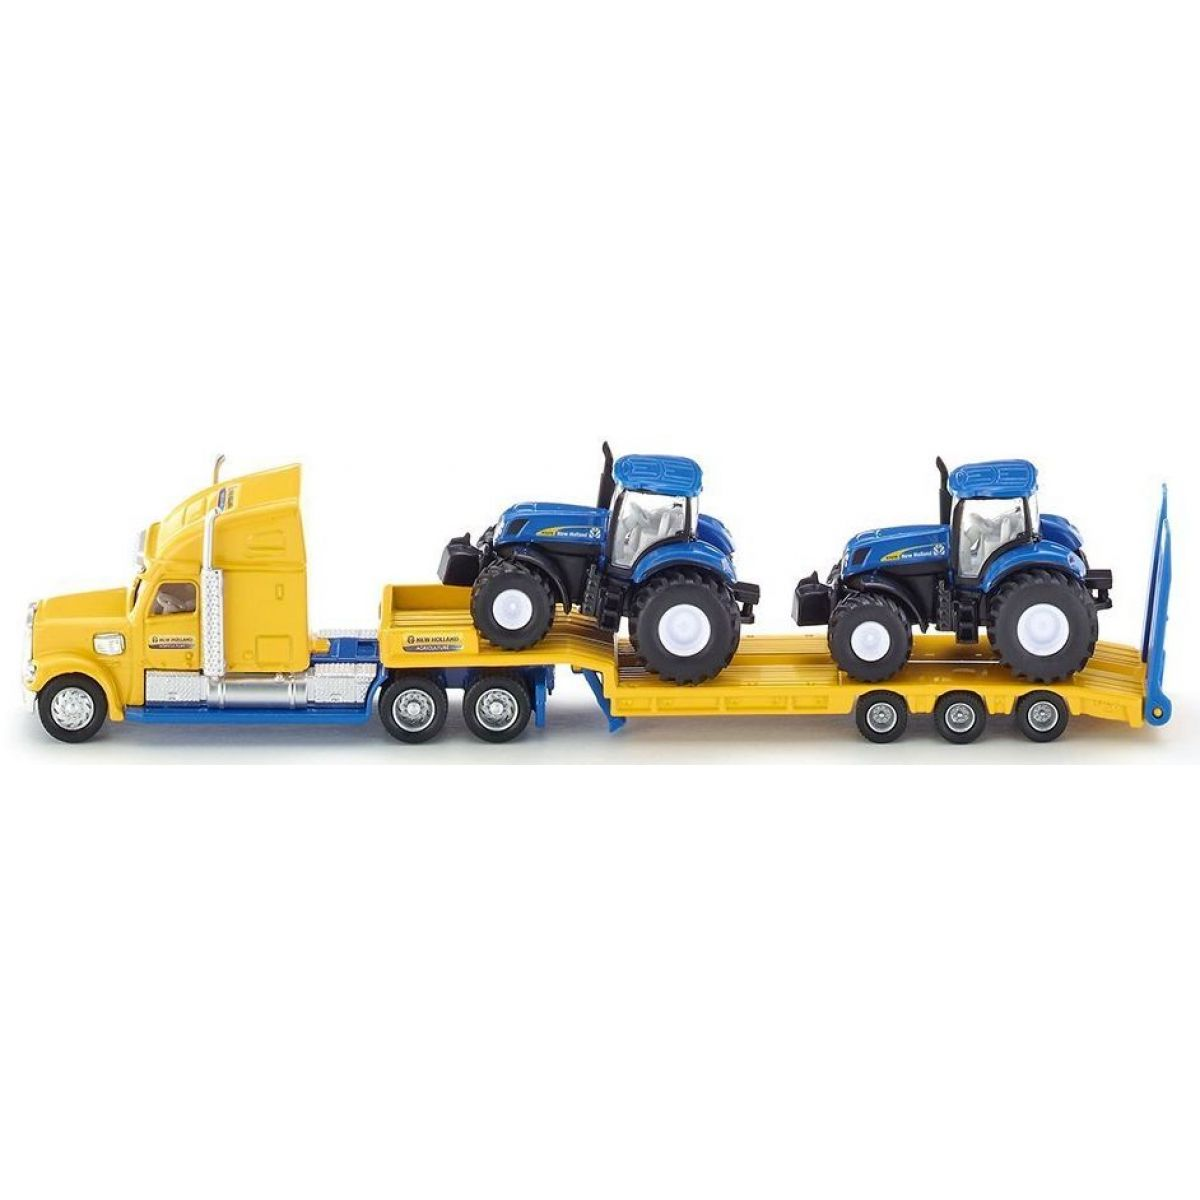 SIKU 1805 Super Ťahač s vlekom a 2 traktory New Holland 1:87